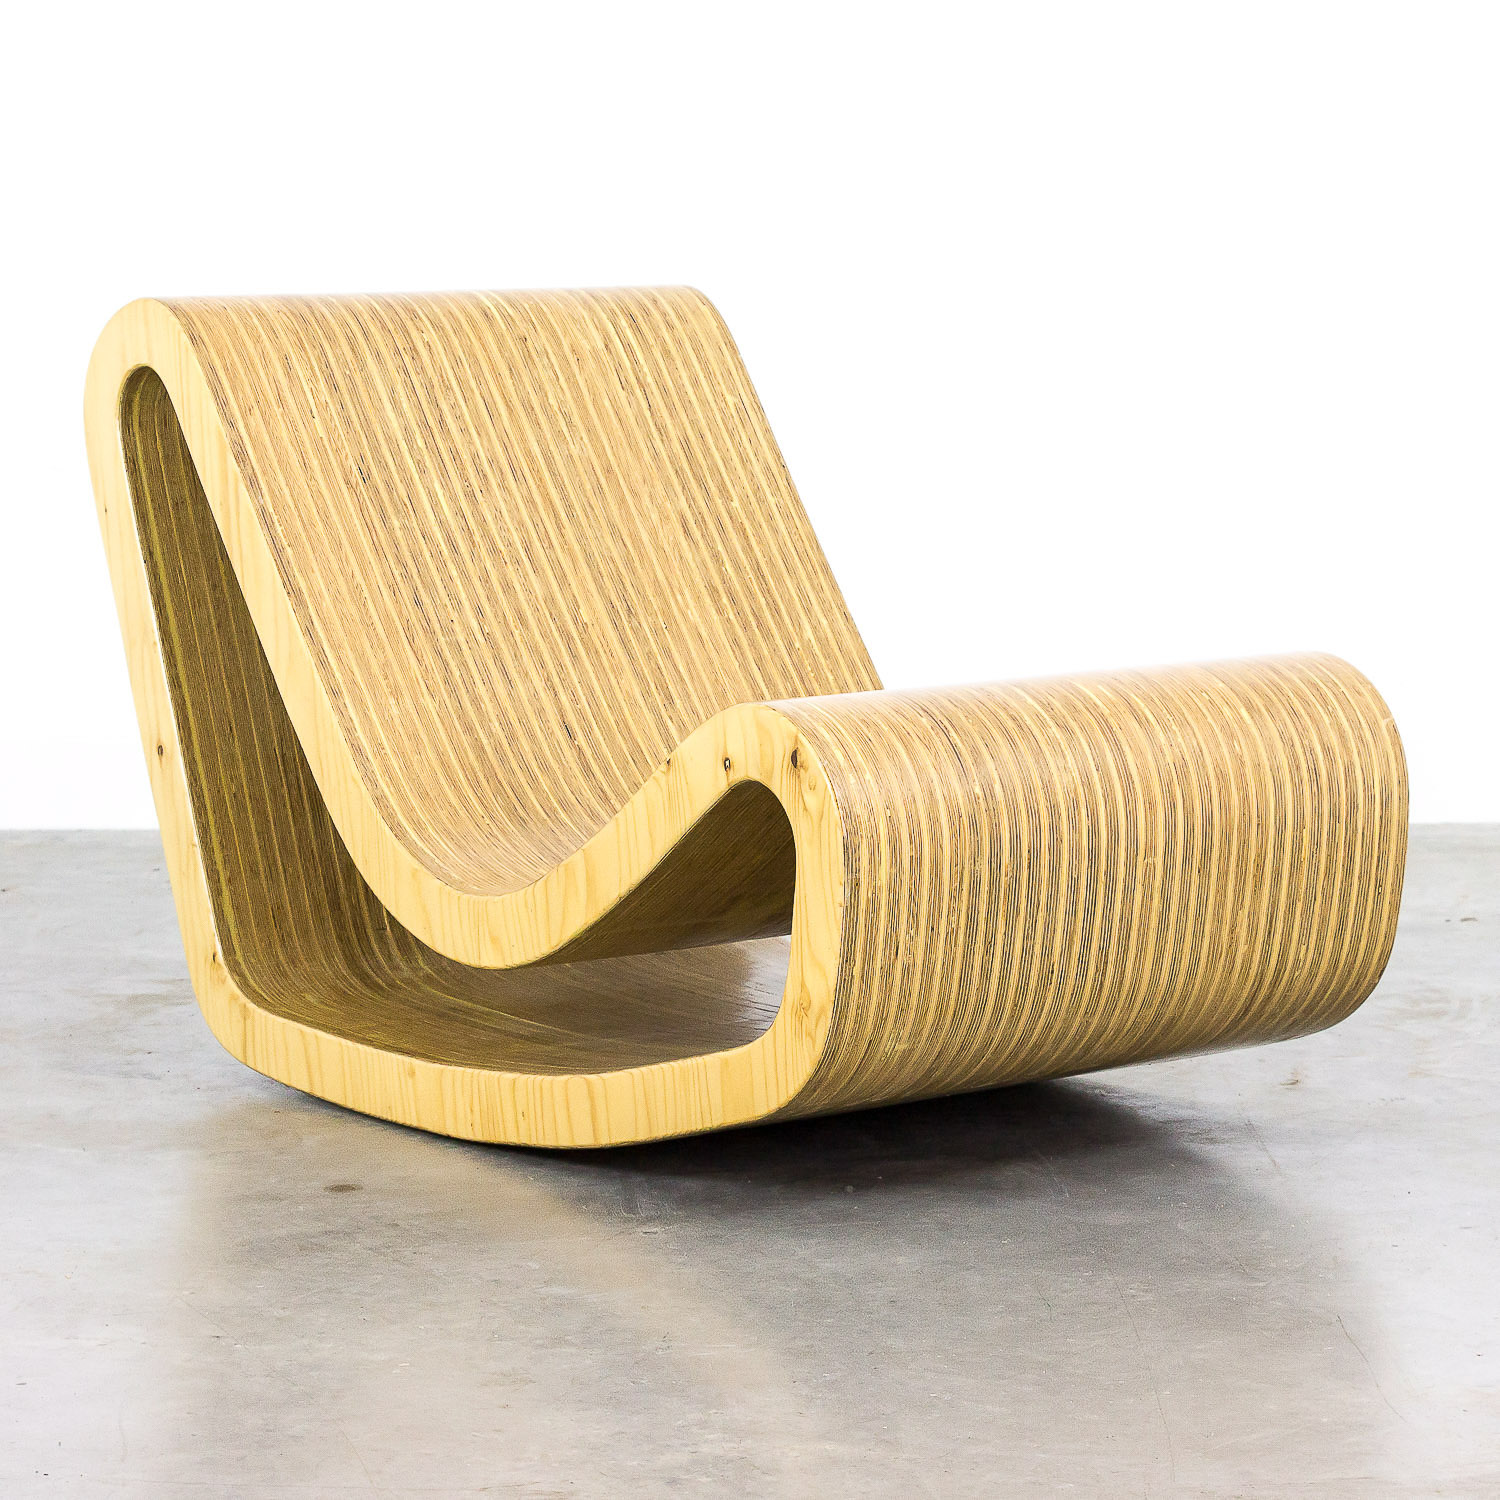 Loop chair by Willy Guhl  handmade replica in wood